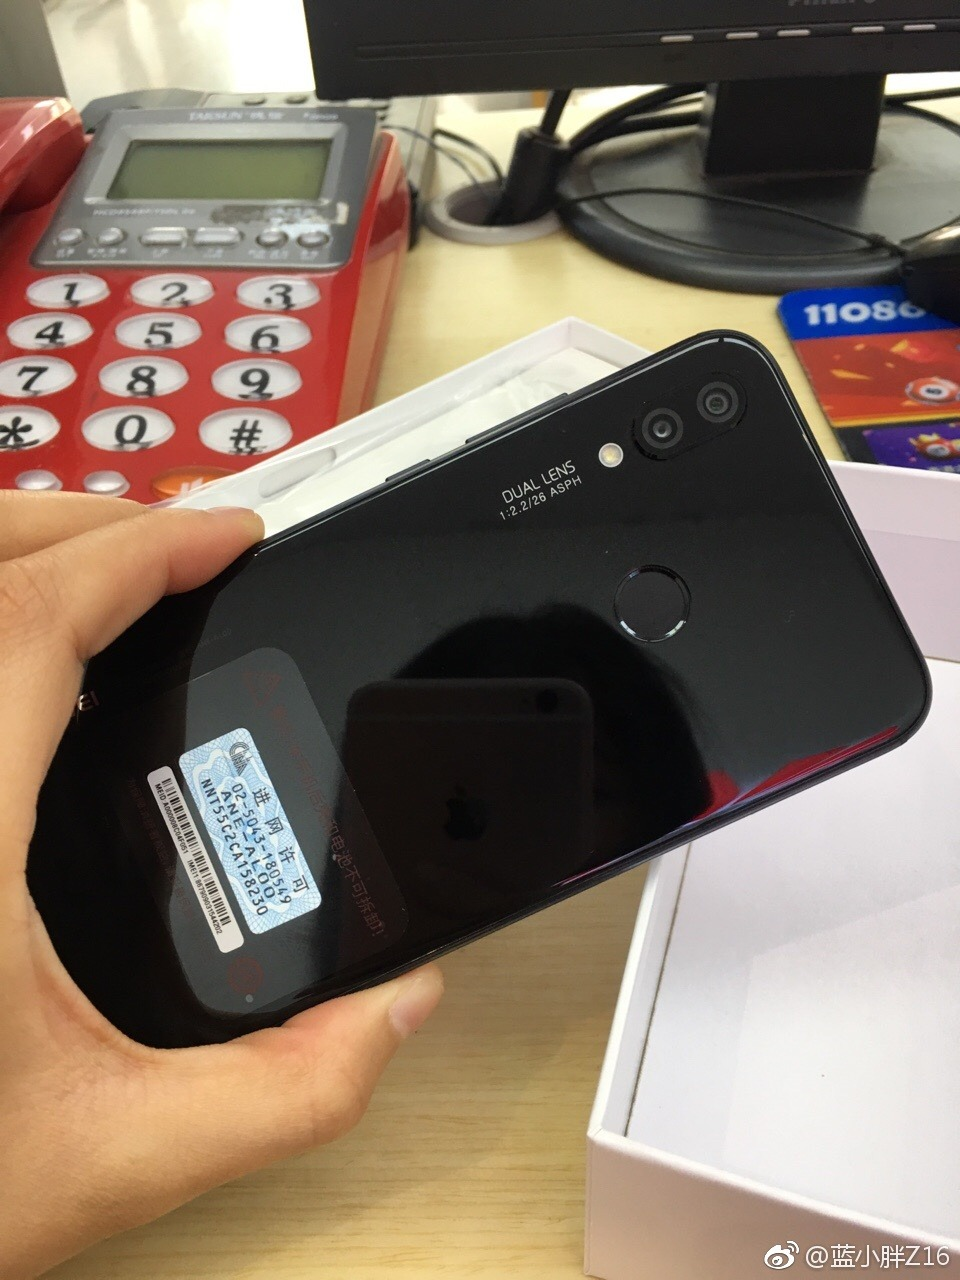 Huawei P20 Lite in midnight black shows up in hands-on images 1